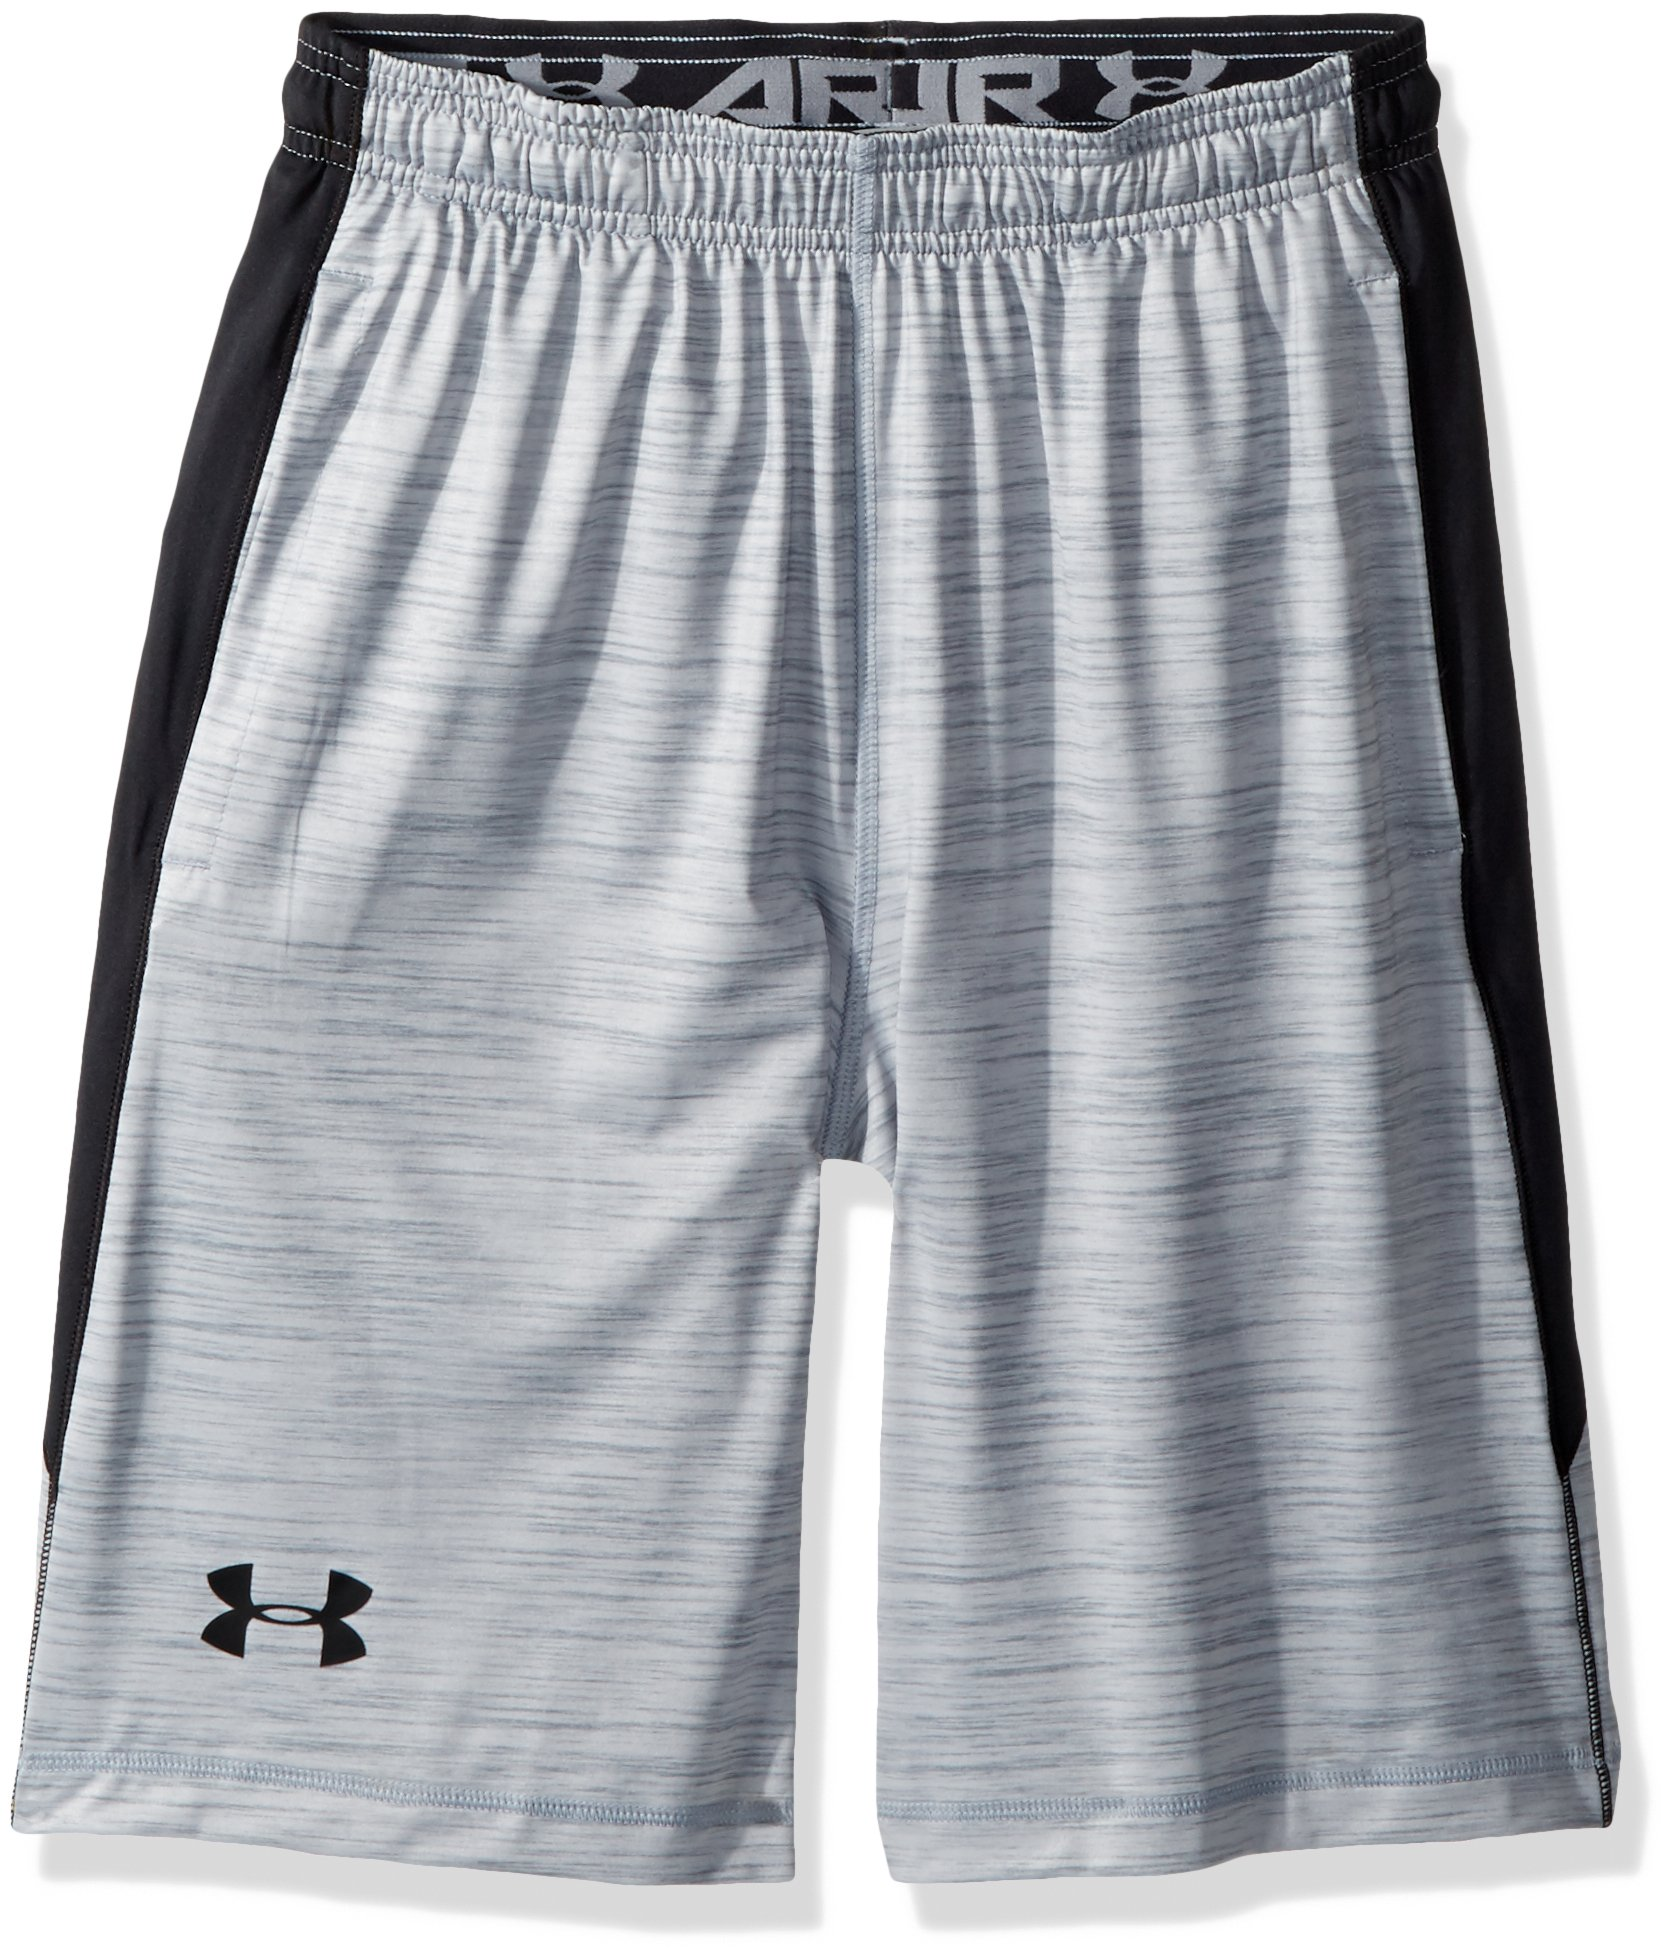 Under Armour Men's Raid Printed 10'' Shorts, Overcast Gray (942)/Black, Large by Under Armour